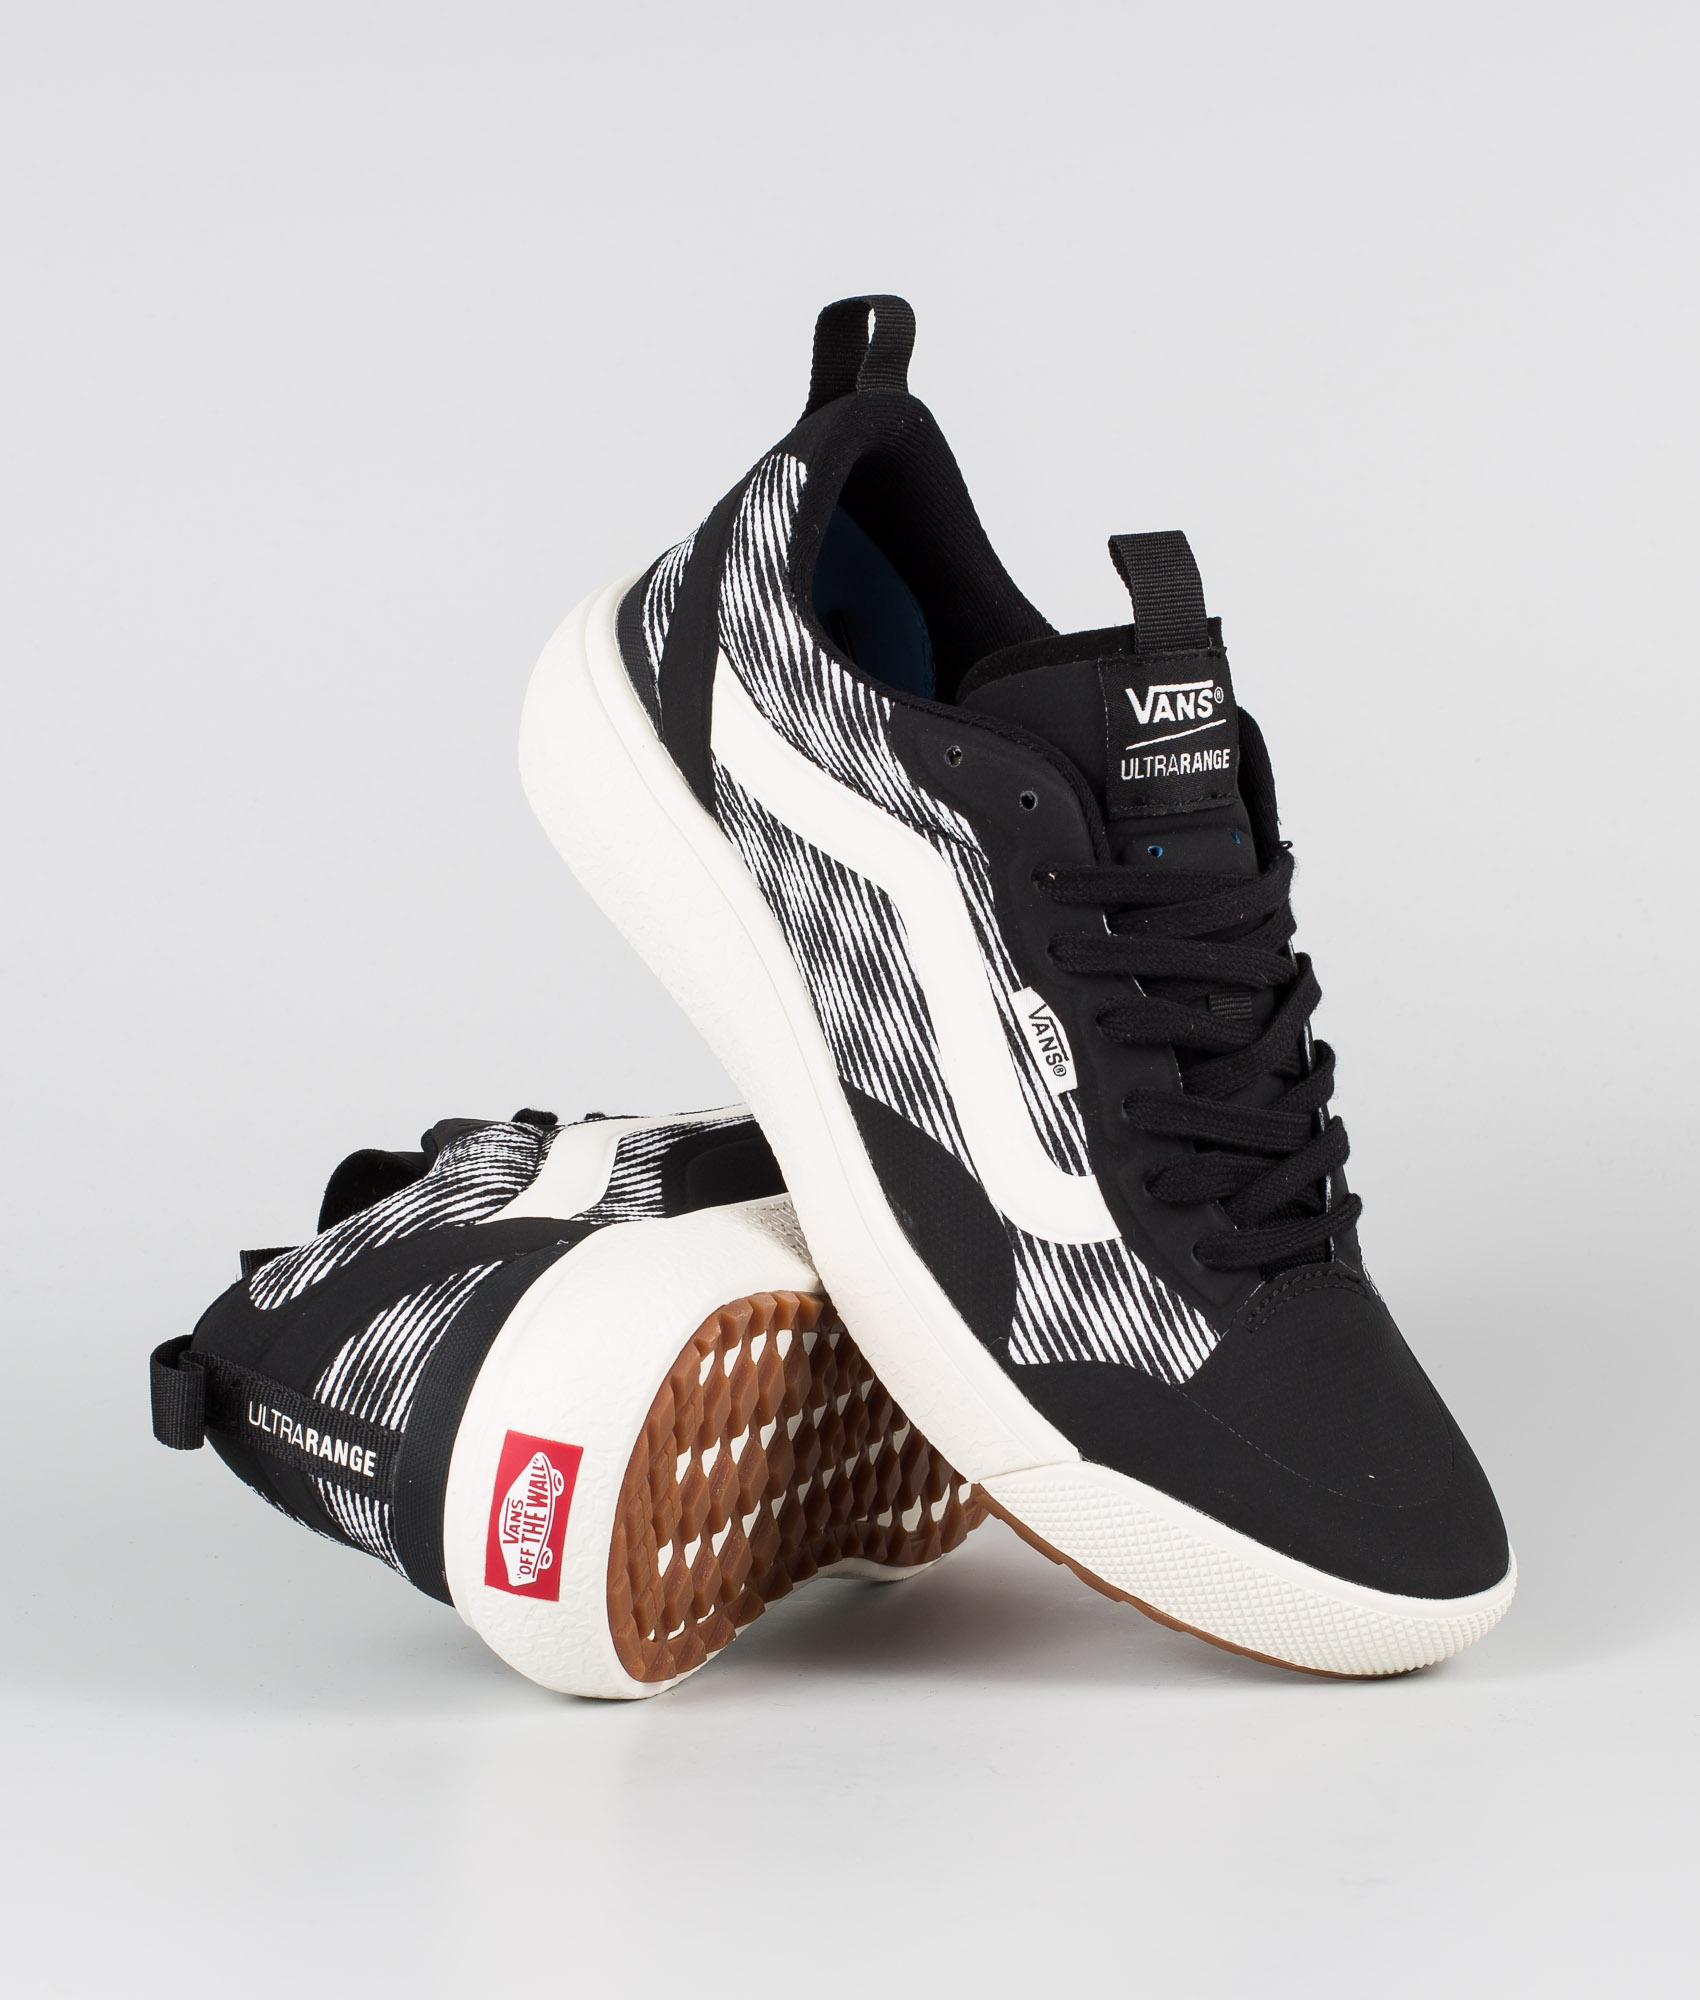 Vans UltraRange EXO Chaussures (Blur Checker)BlackMarshmelow